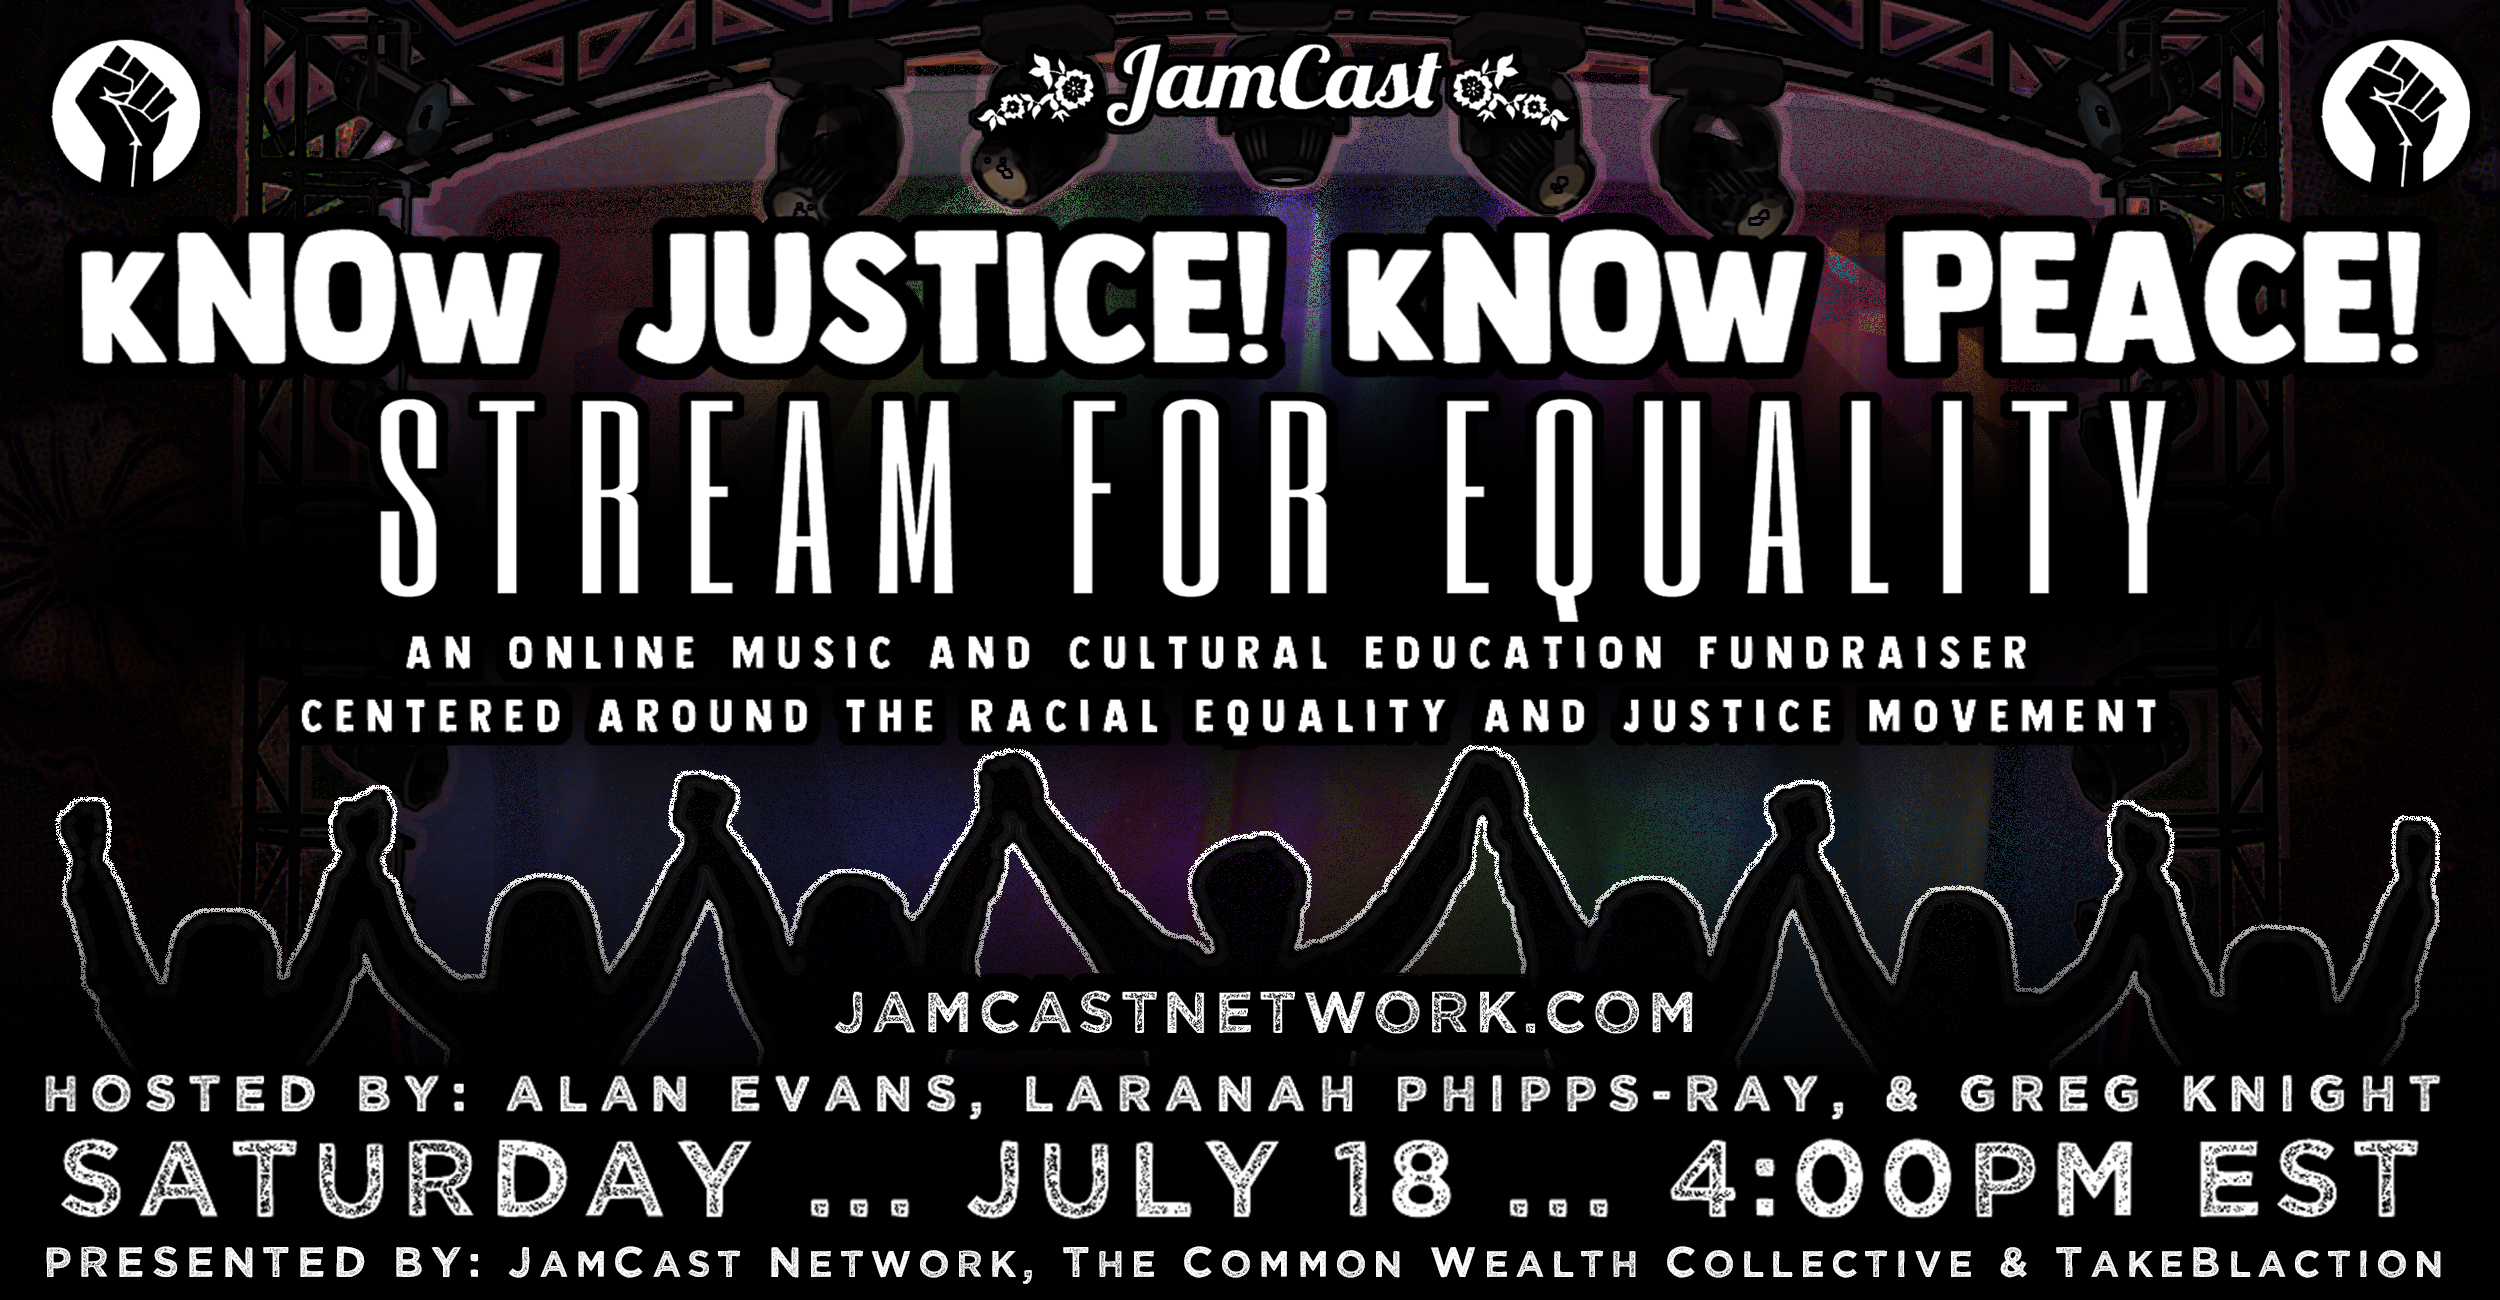 JamCast Presents: kNOw Justice! kNOw Peace! Stream for Equality